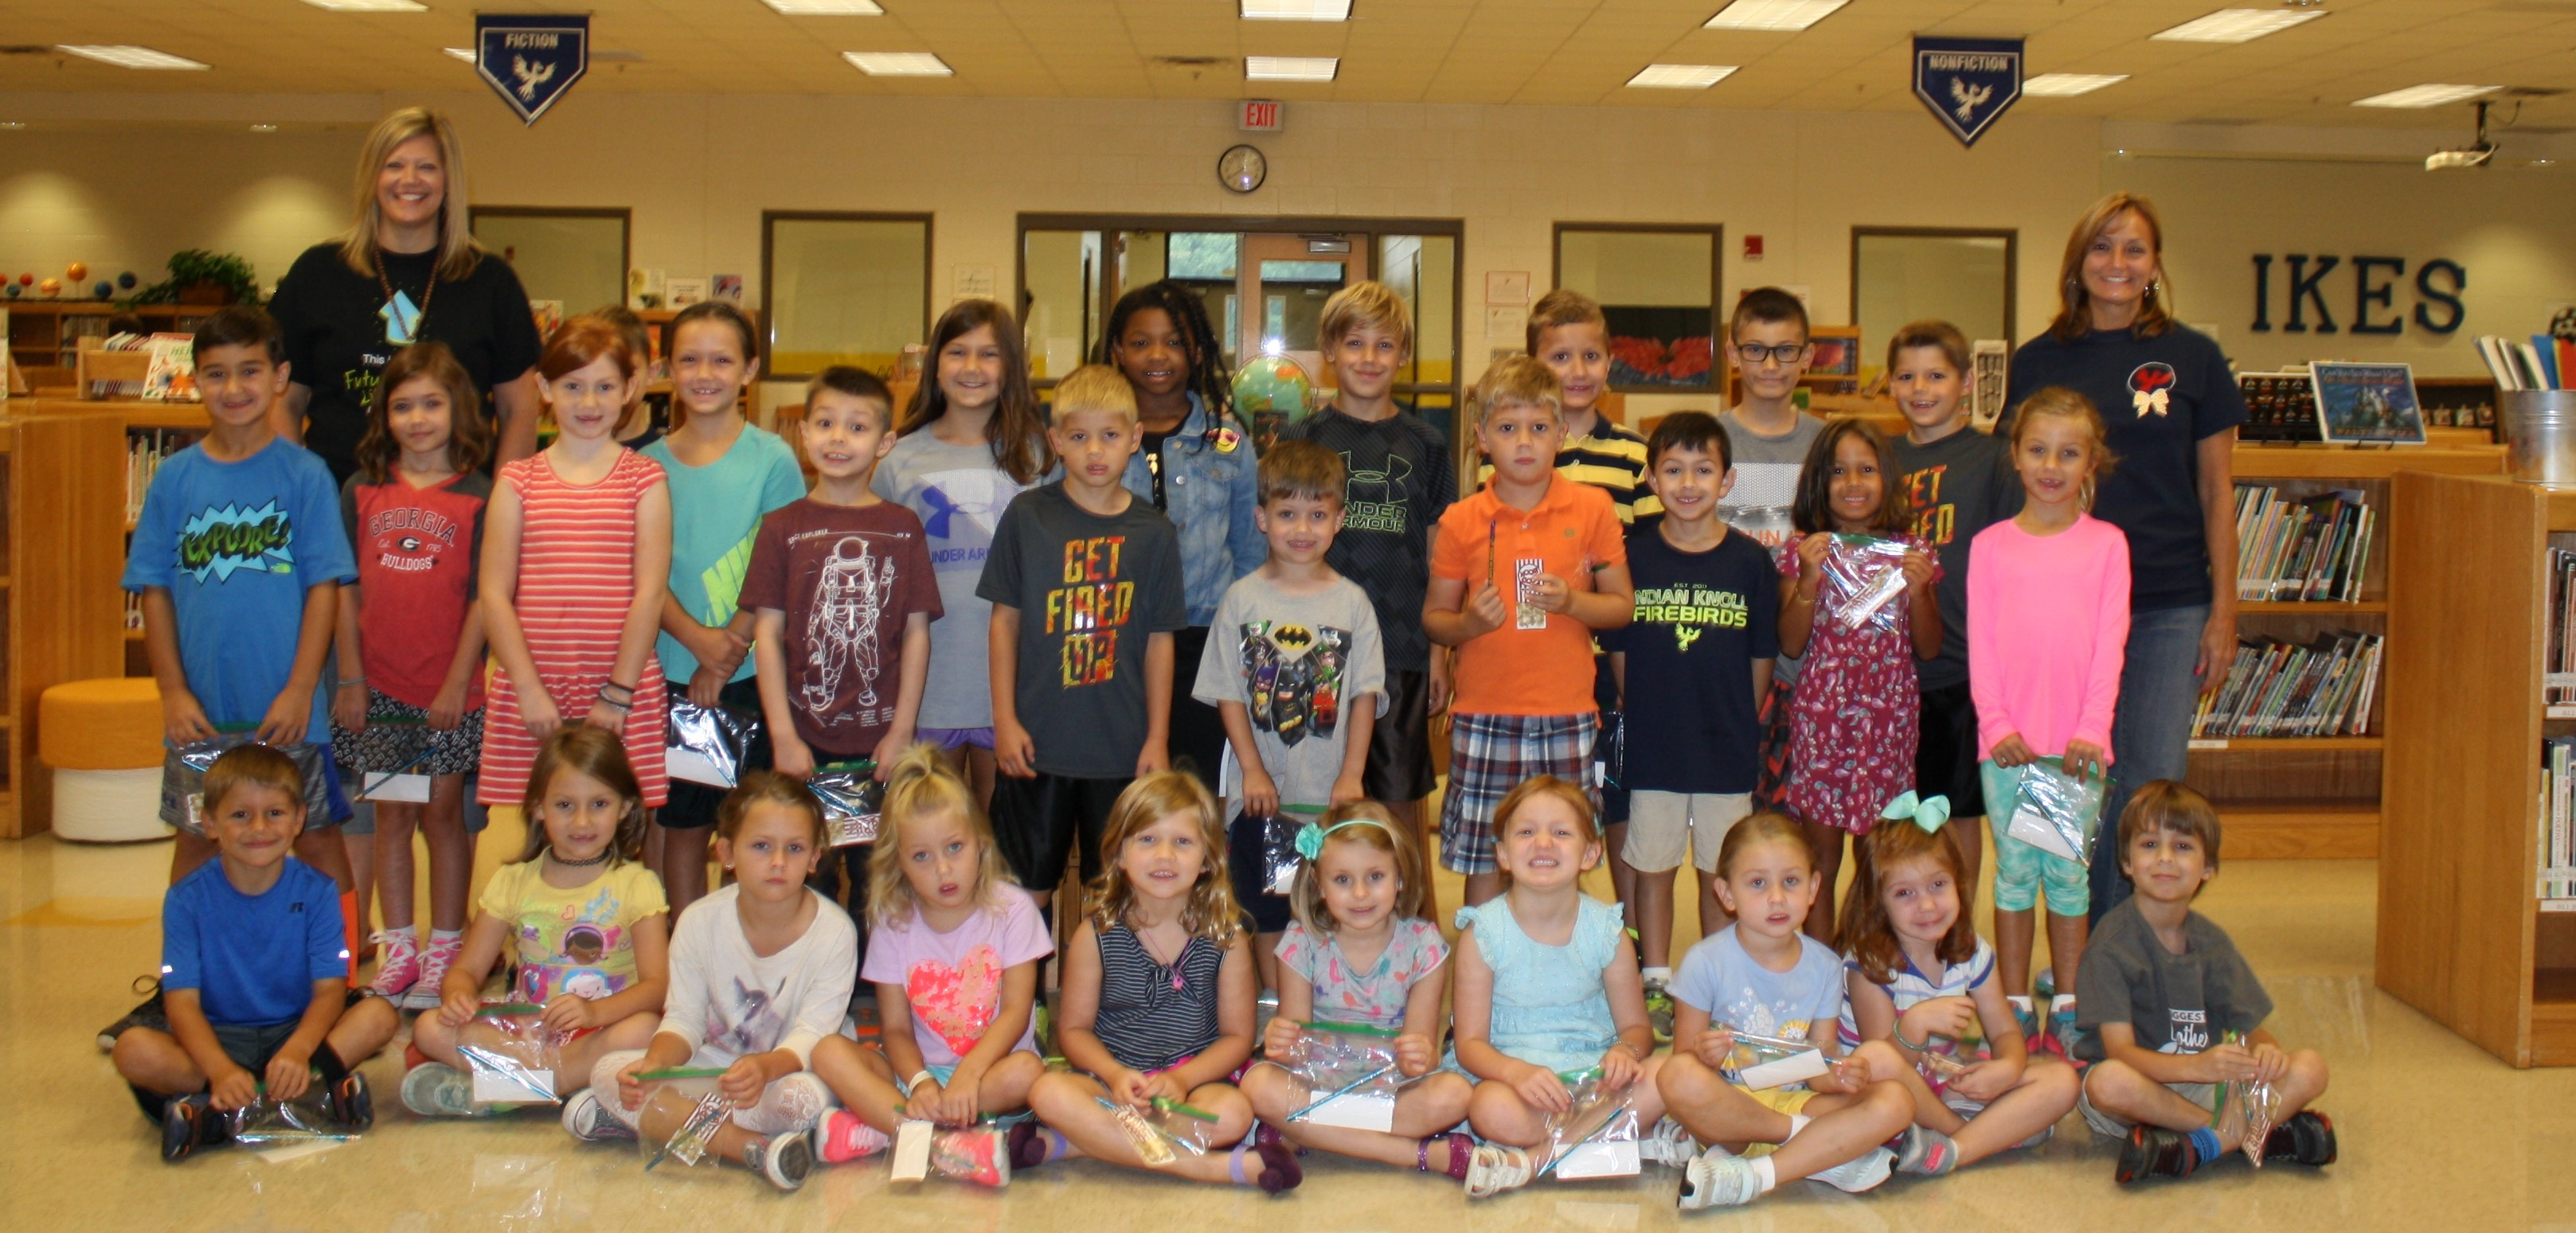 IKES Summer Readers